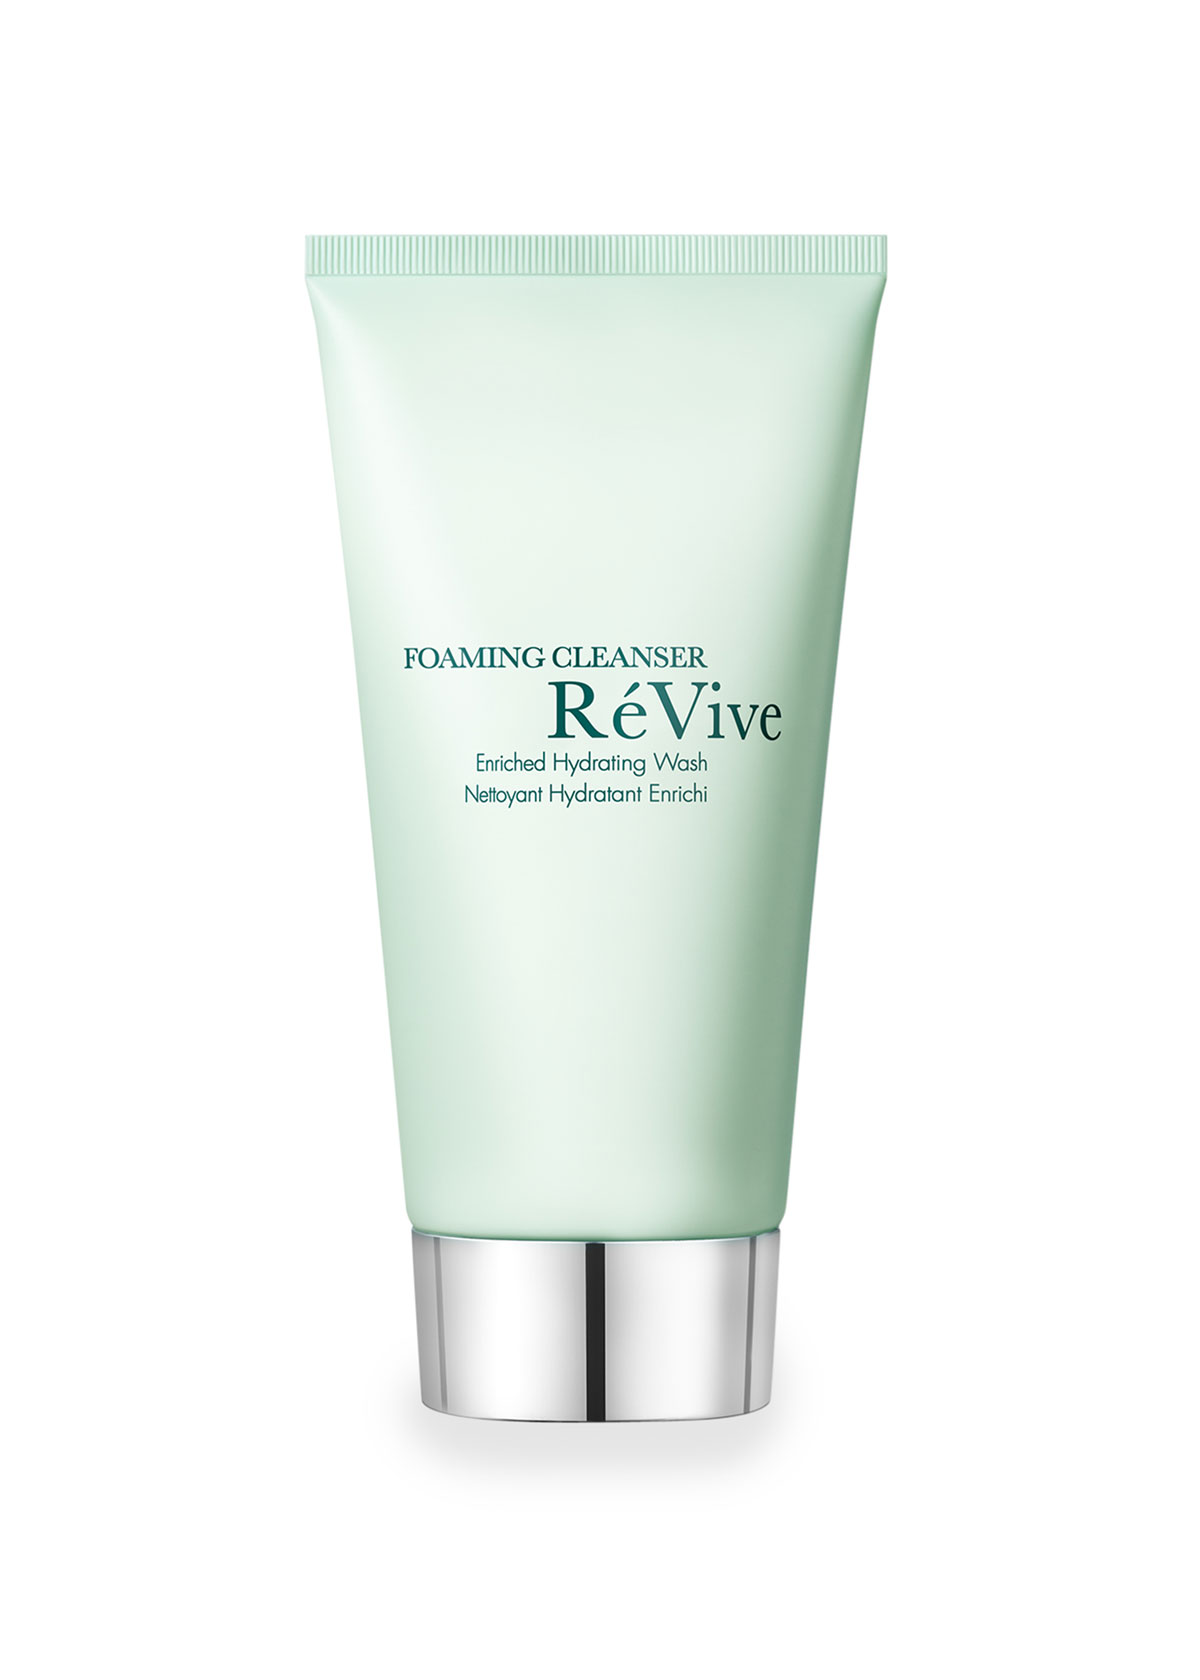 Revive FOAMING CLEANSER ENRICHED HYDRATING WASH, 4.2 OZ./ 125 ML